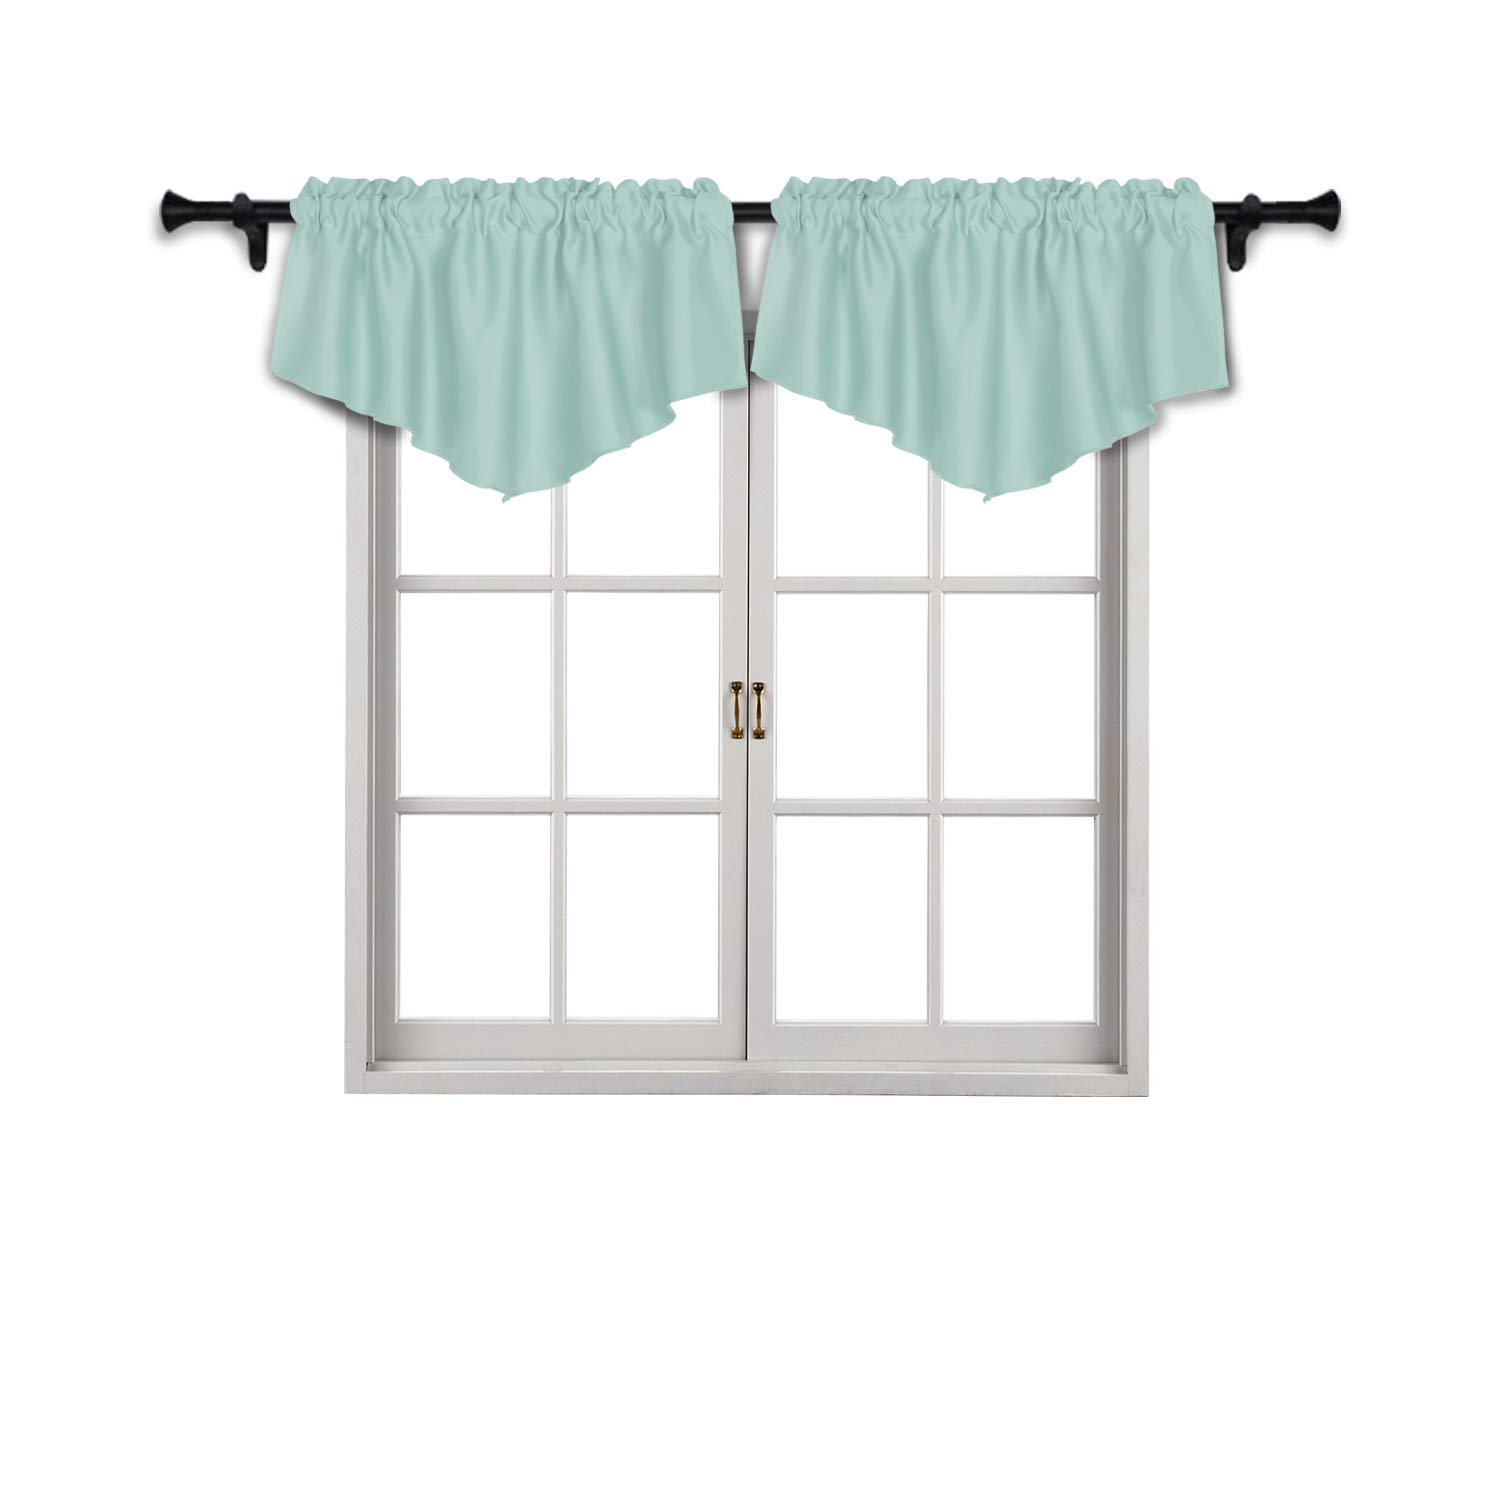 SUO AI TEXTILE Thermal Insulated Rod Pocket Blackout Tier Curtains Triangle Blackout Valances Curtains for Small Window 42x18 Inch Mint Green 2 PCS